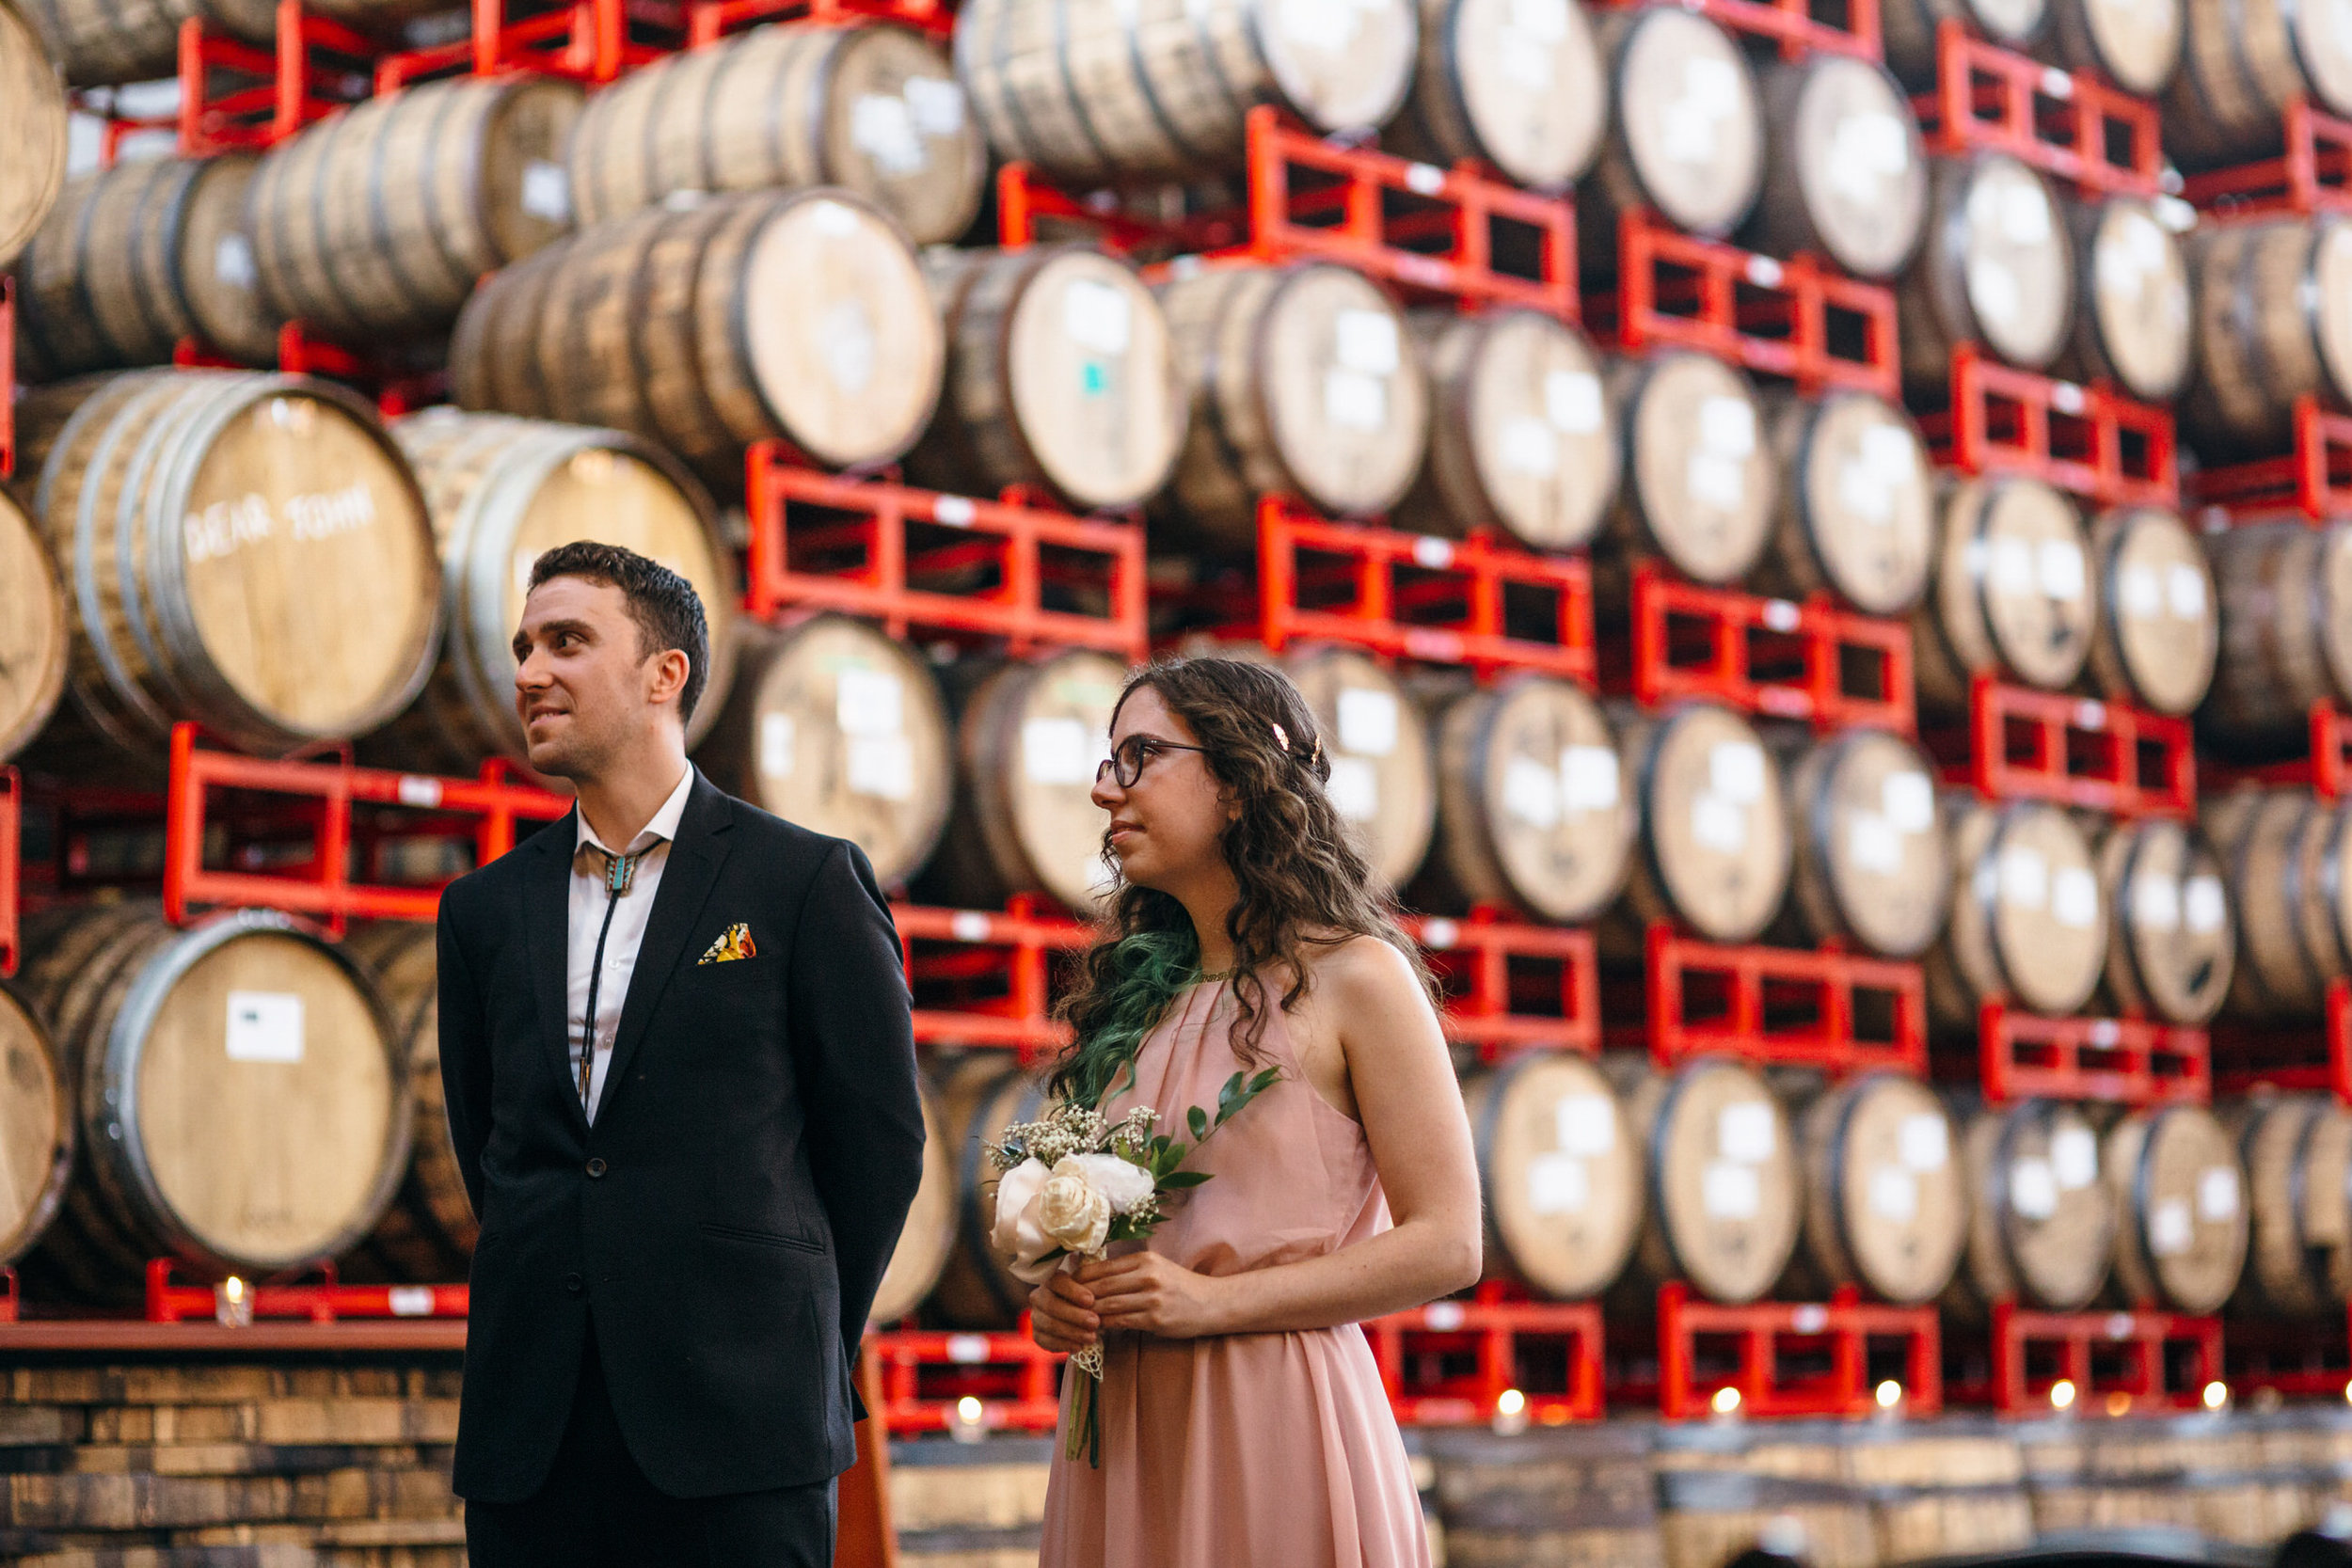 Revolution Tap Room Chicago  Portland Destination Wedding Photographer0051.JPG